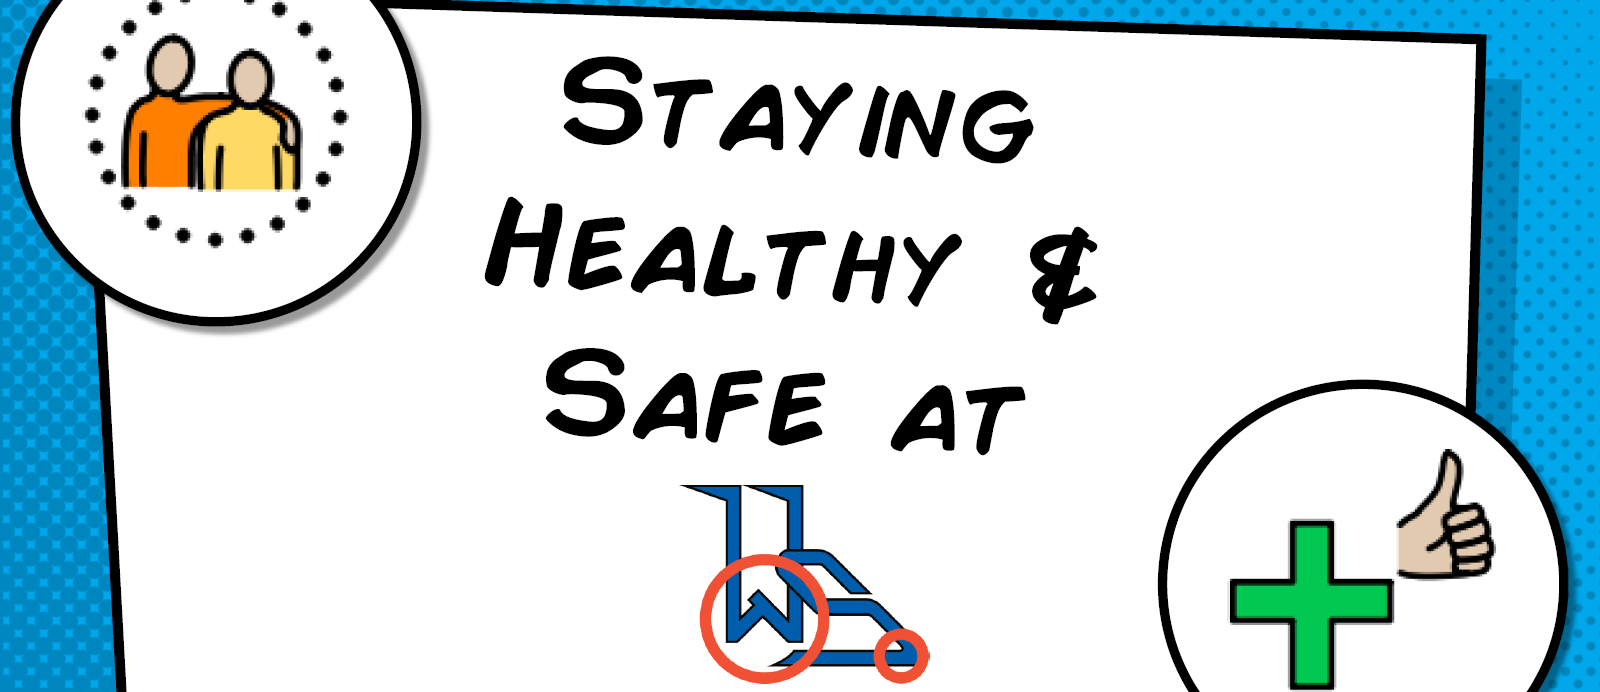 Staying Healthy and safe at WS